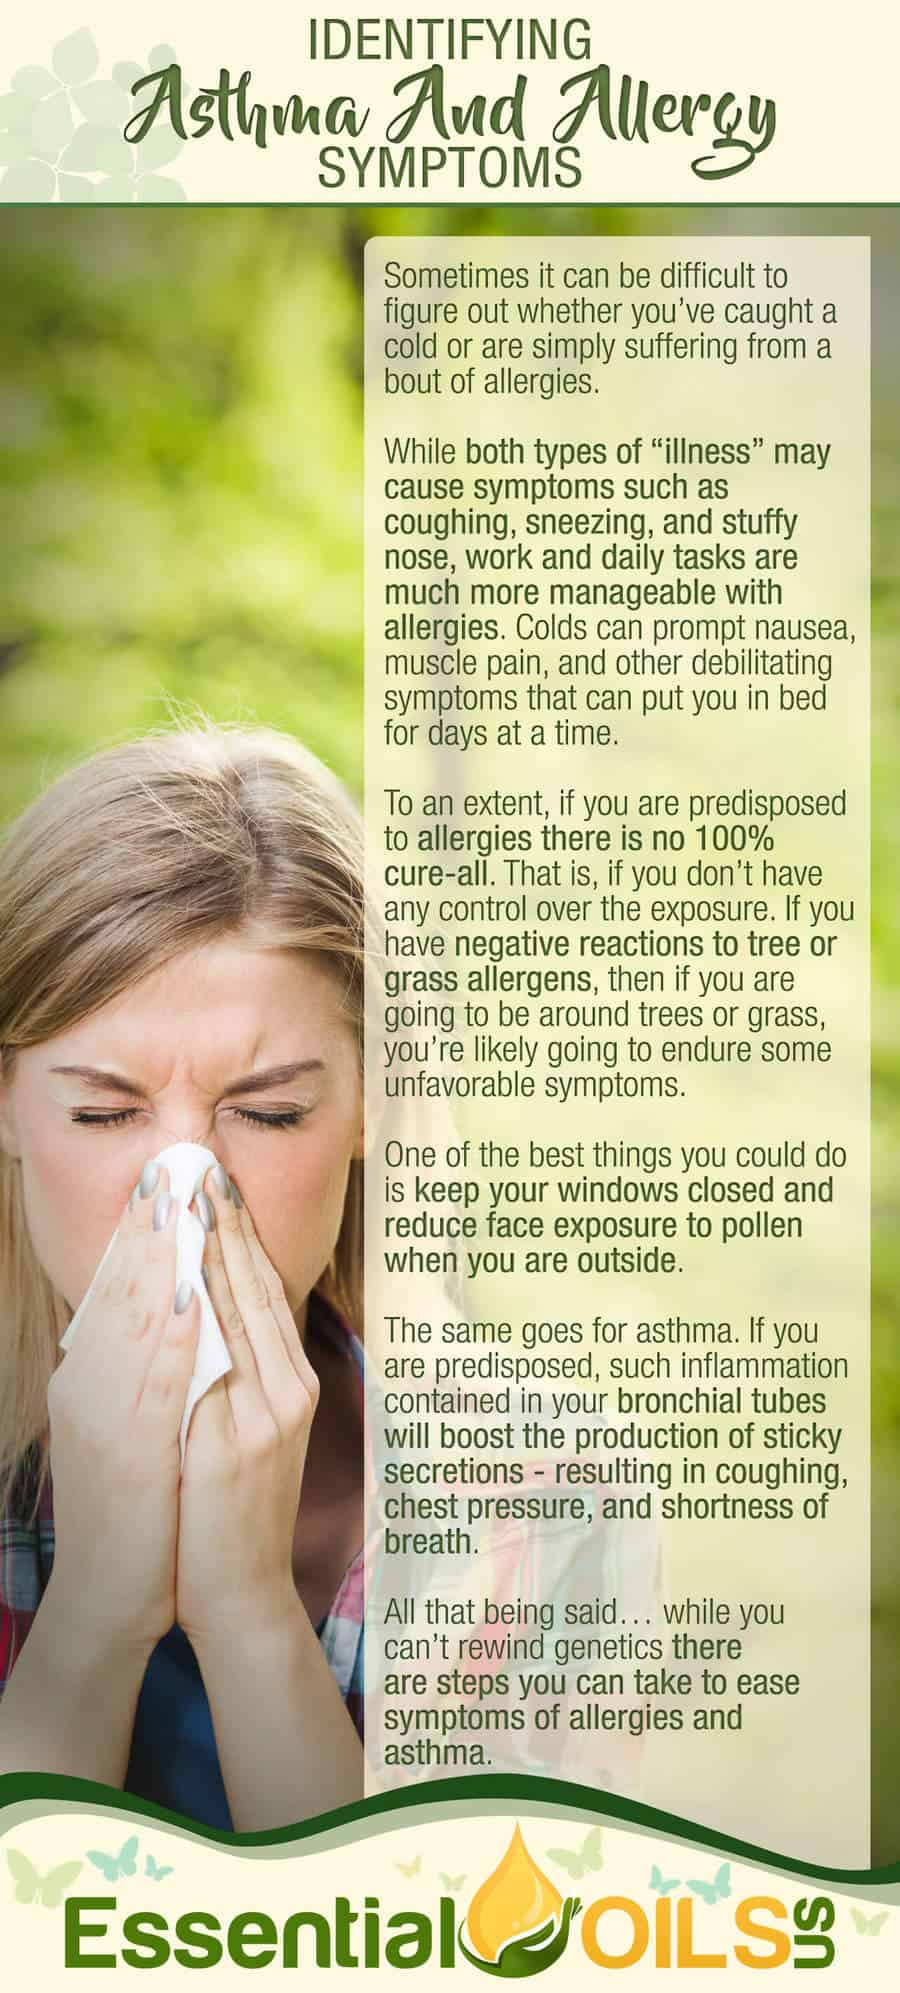 doTerra Essential Oils For Asthma And Allergy